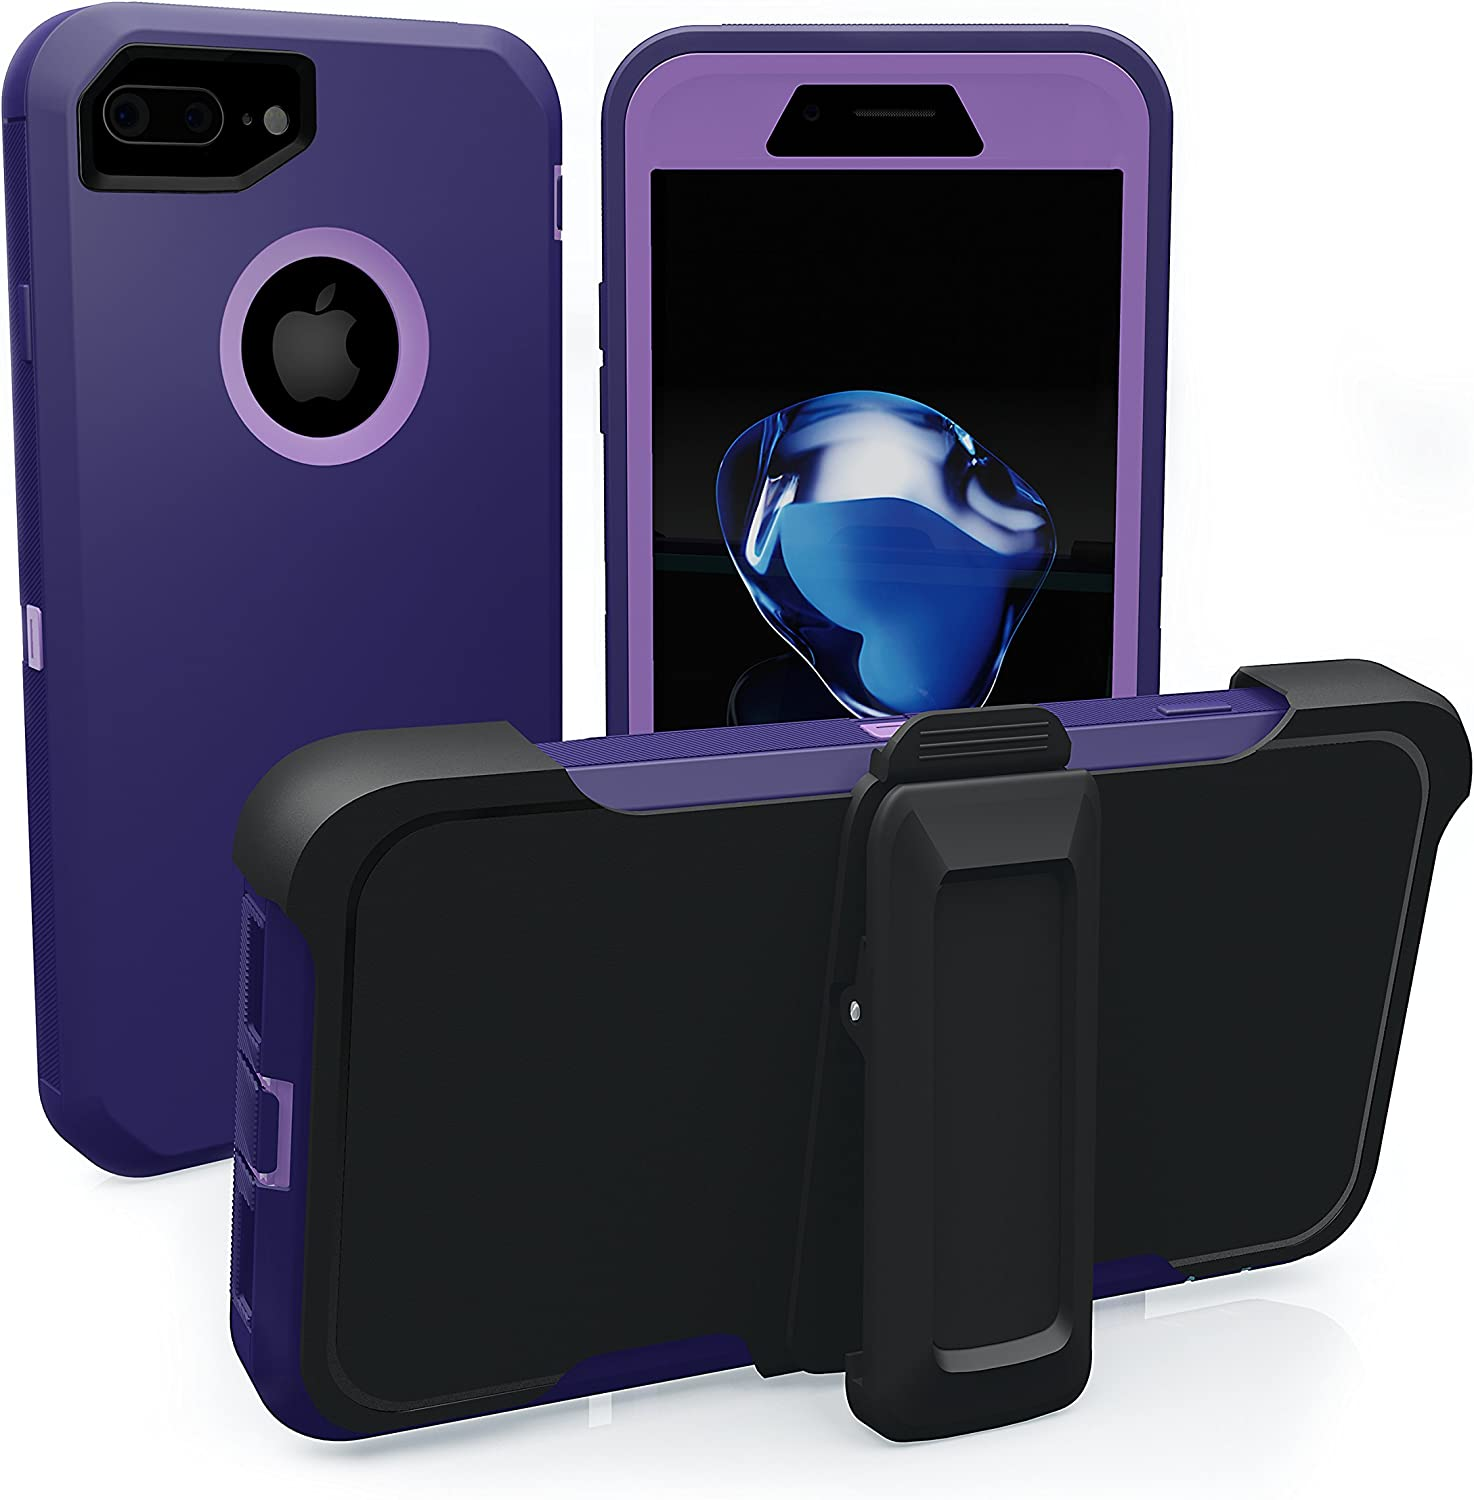 iPhone 7 Plus Case, iPhone 8 Plus Case, ToughBox [Armor Series] [Shockproof] [Purple | Violet] for Apple iPhone 7/8 Plus Case [Screen Protector] [Holster & Belt Clip] [Fits OtterBox Defender Clip]